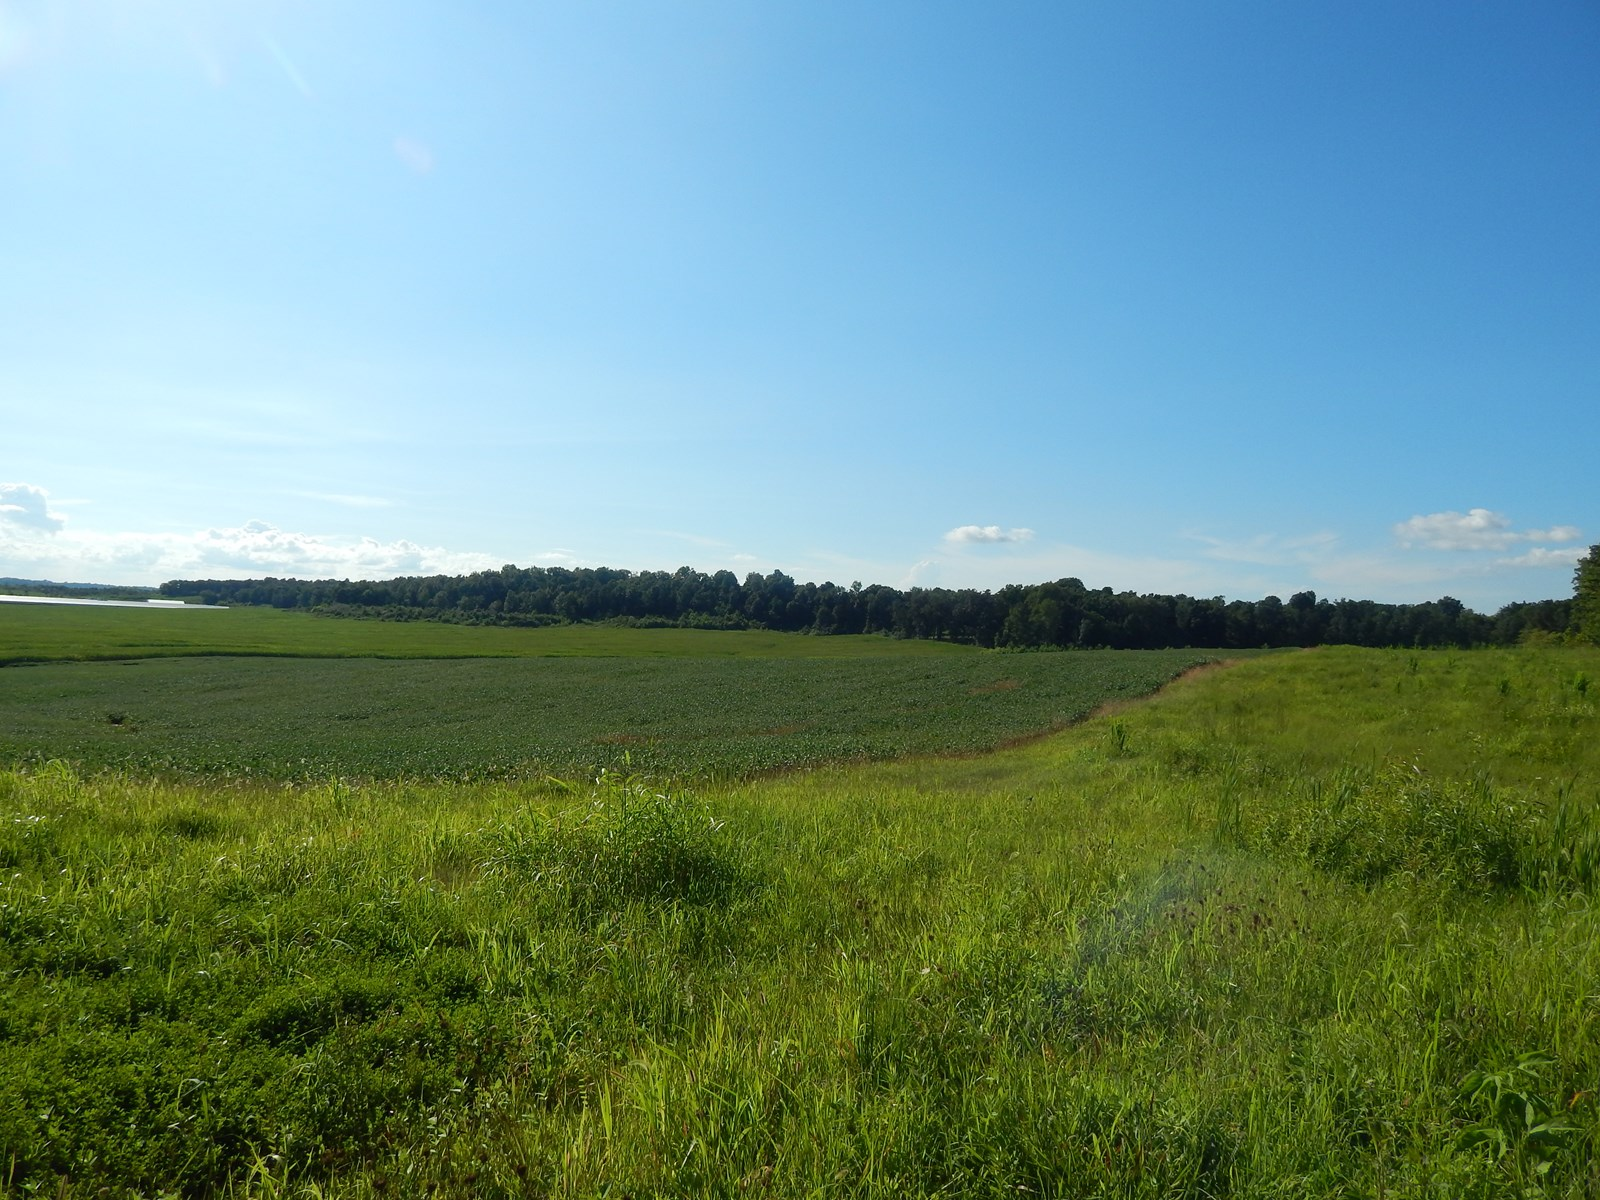 130 Acre Farm for Sale/Lease Purchase near Central City Ky.